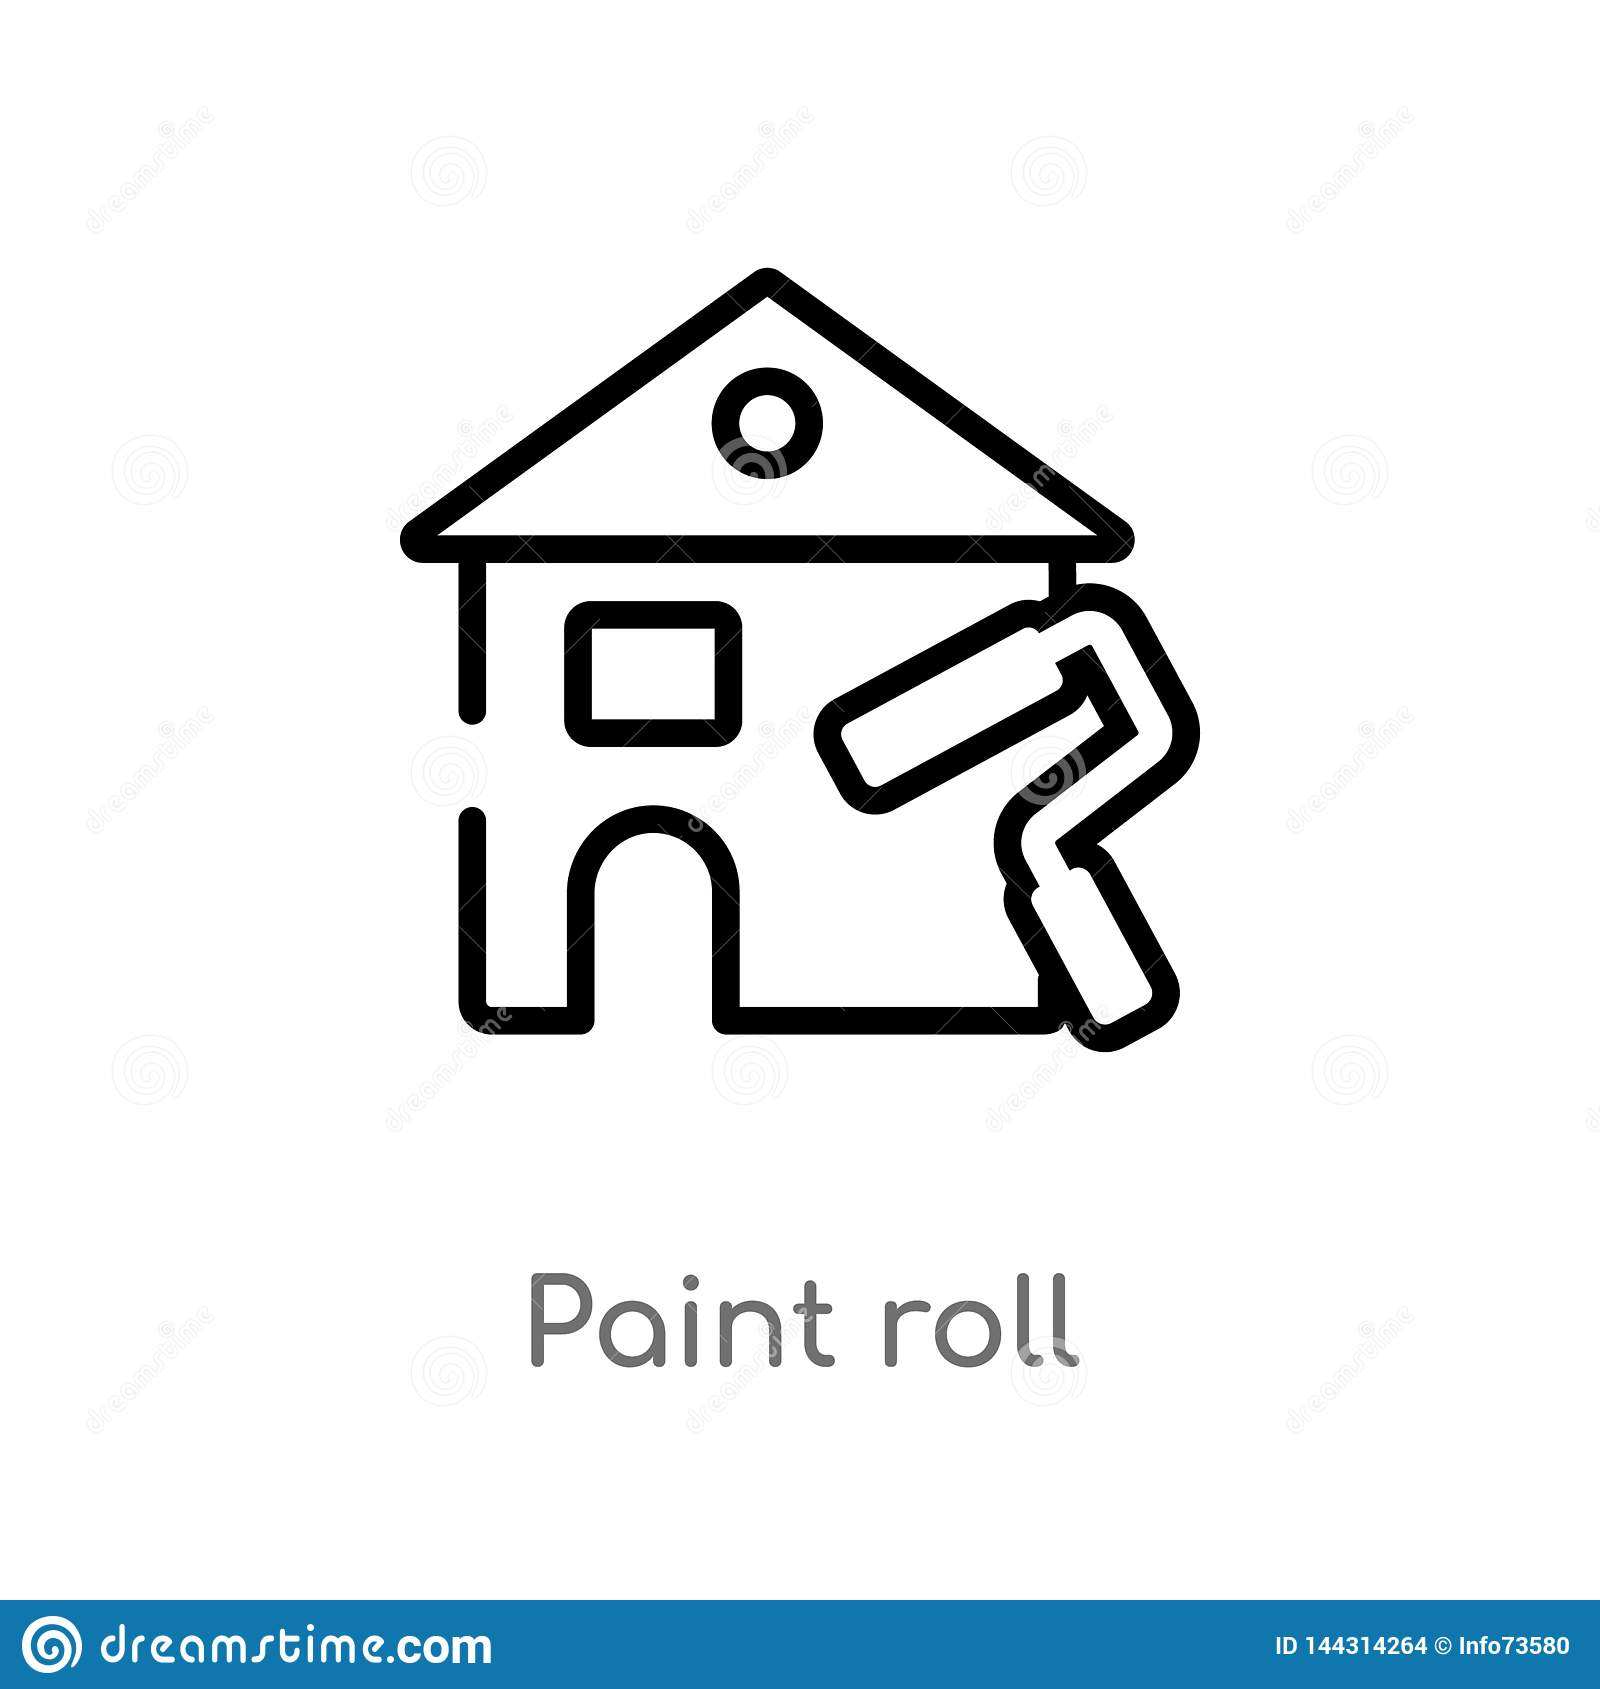 outline paint roll vector icon. isolated black simple line element illustration from real estate concept. editable vector stroke